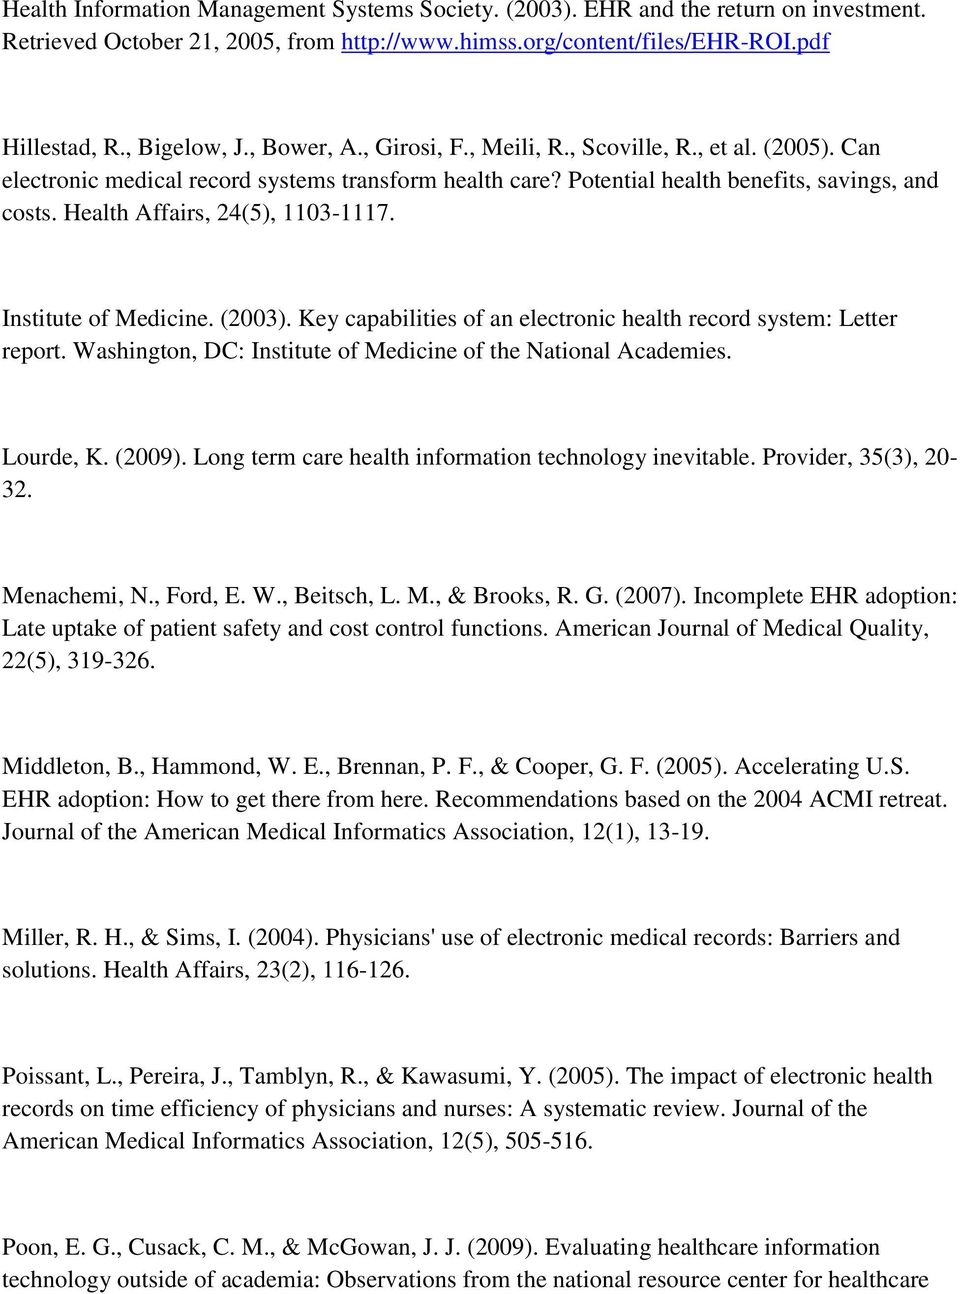 Health Affairs, 24(5), 1103-1117. Institute of Medicine. (2003). Key capabilities of an electronic health record system: Letter report. Washington, DC: Institute of Medicine of the National Academies.